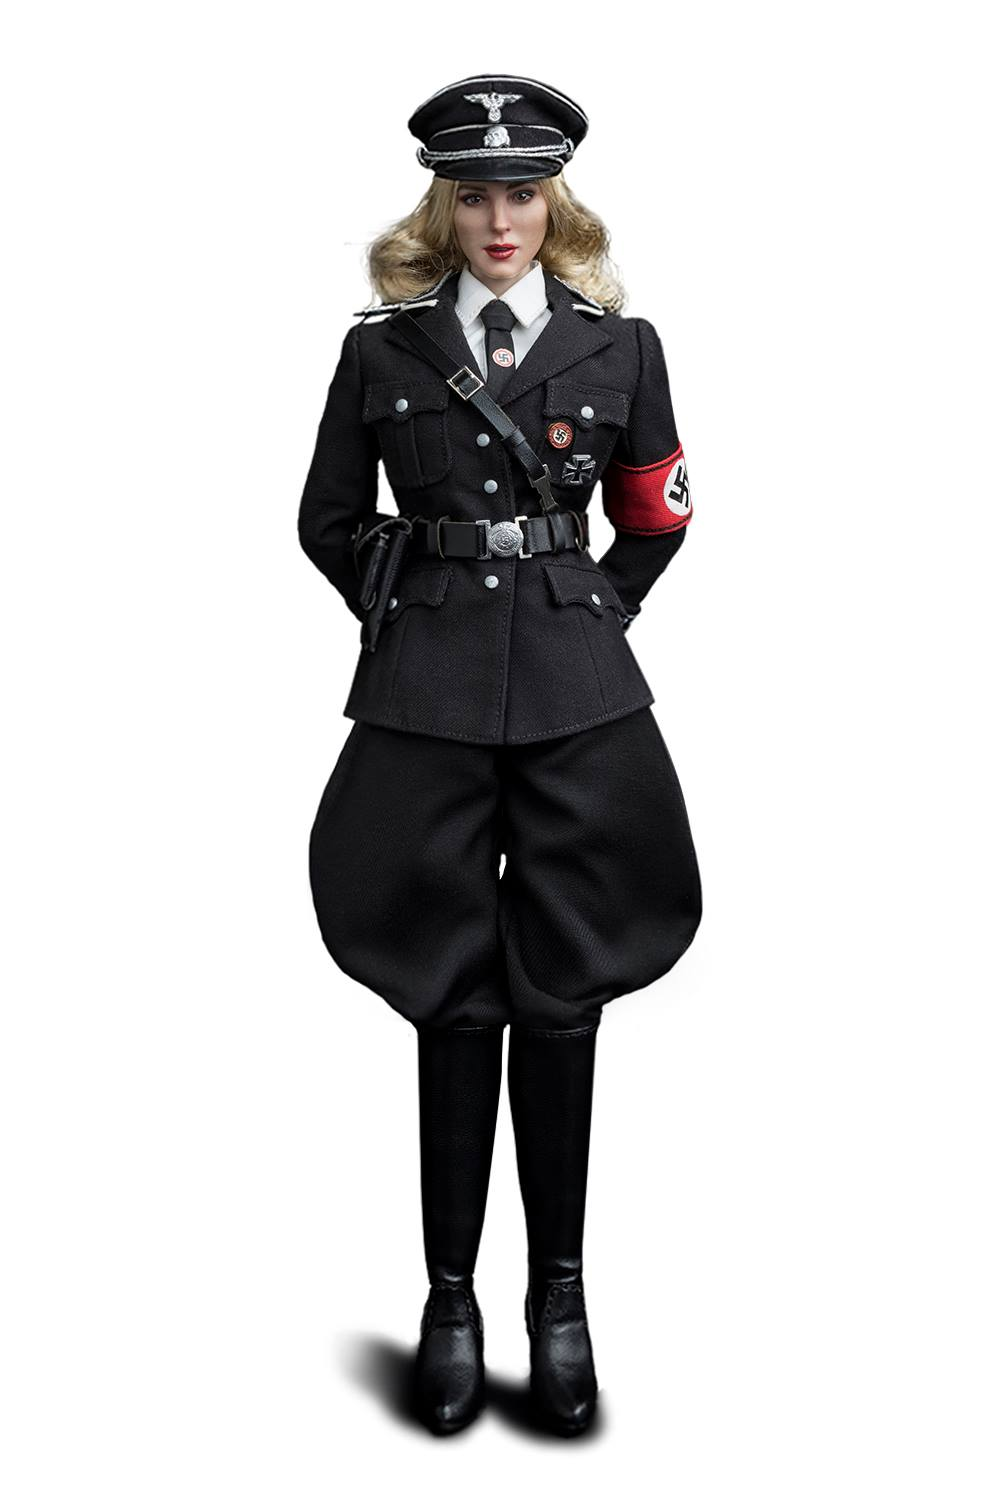 VeryCool - NEW PRODUCT: VERYCOOL VCF-2036 1/6 SS Female Officer 1318